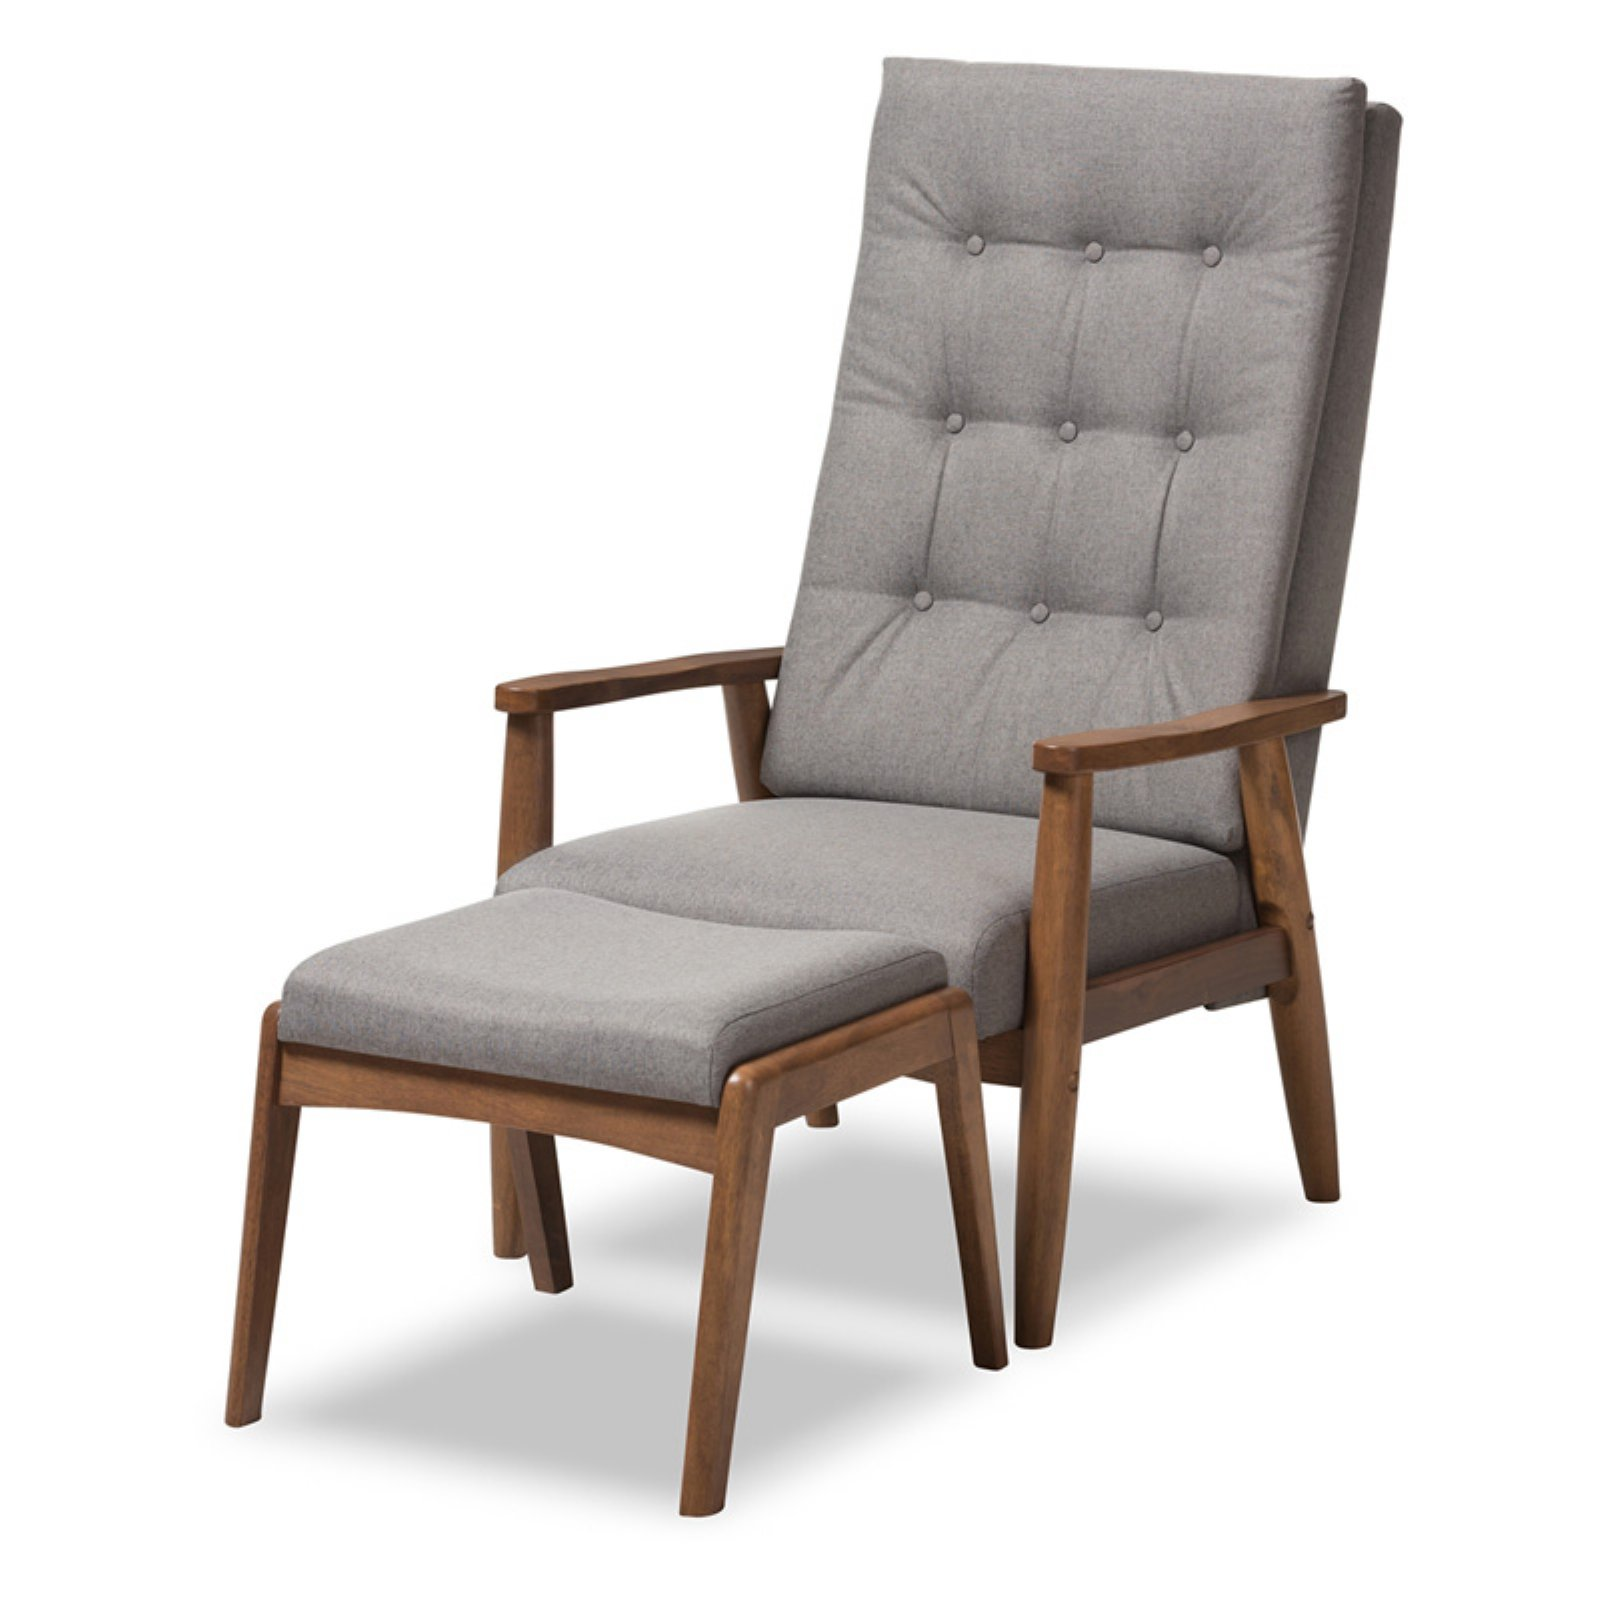 Baxton Studio Roxy Mid-Century Modern Walnut Wood Finishing and Grey Fabric Upholstered Button-Tufted High-Back Lounge Chair and Ottoman Set